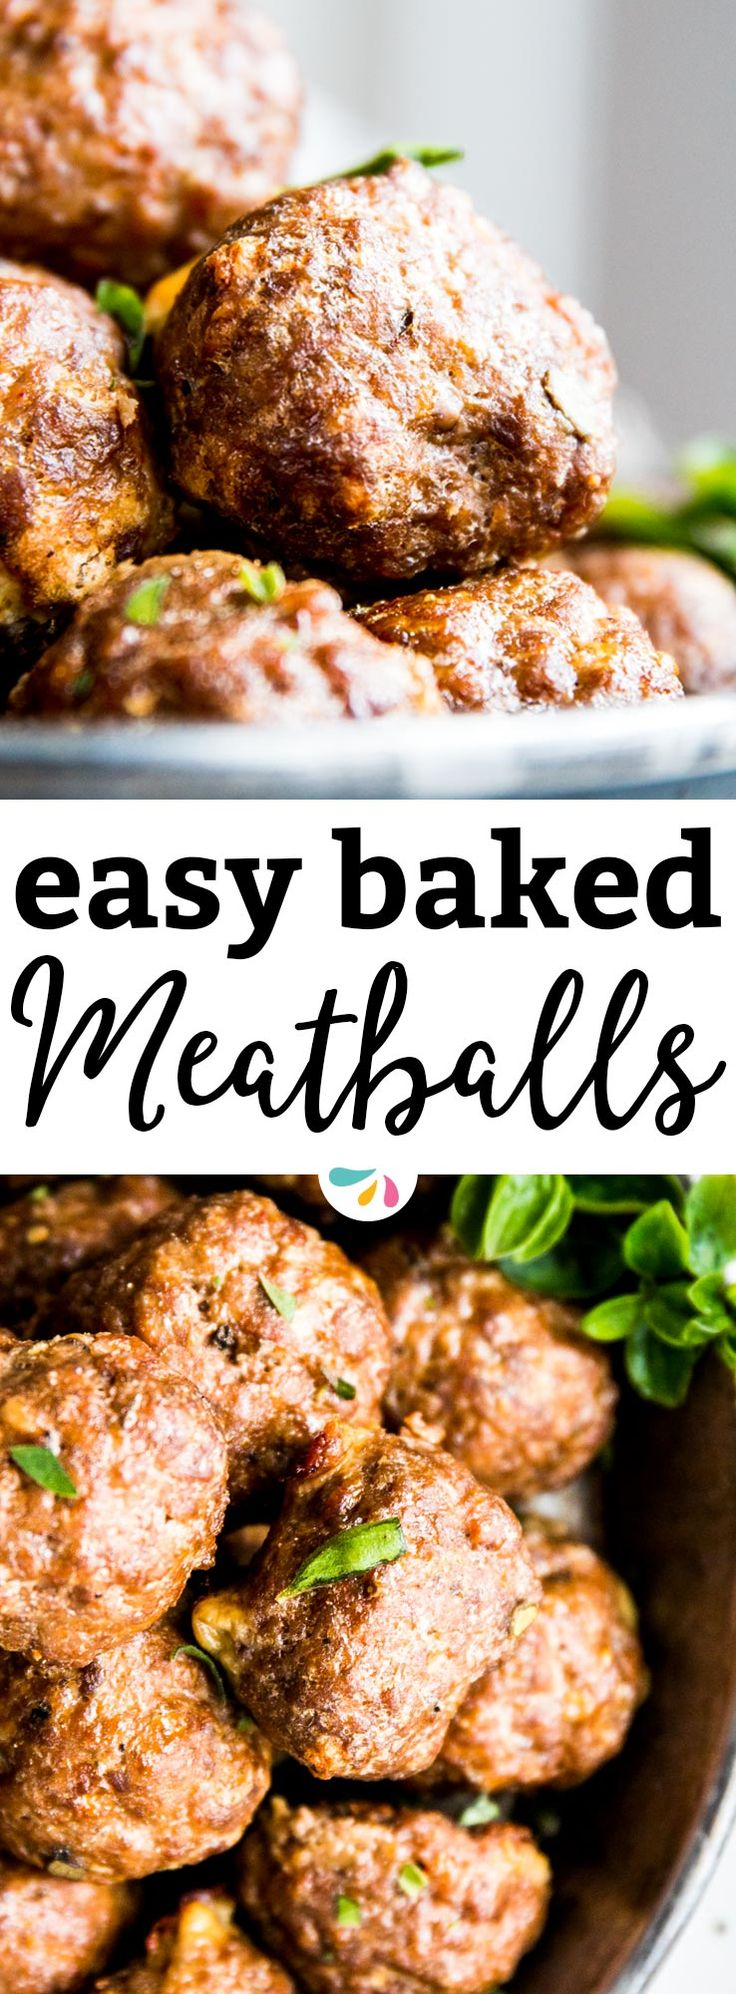 These easy oven baked meatballs are quick and simple to make - without having to babysit them on the stove! This makes them perfect to feed a crowd at a party, too. Serve them in tomato sauce over spaghetti for dinner, or as an appetizer with a dip! | #recipes #meatballs #groundbeef #groundbeefrecipes #beef #beefrecipes #easydinner #dinner #dinnerrecipes #appetizer